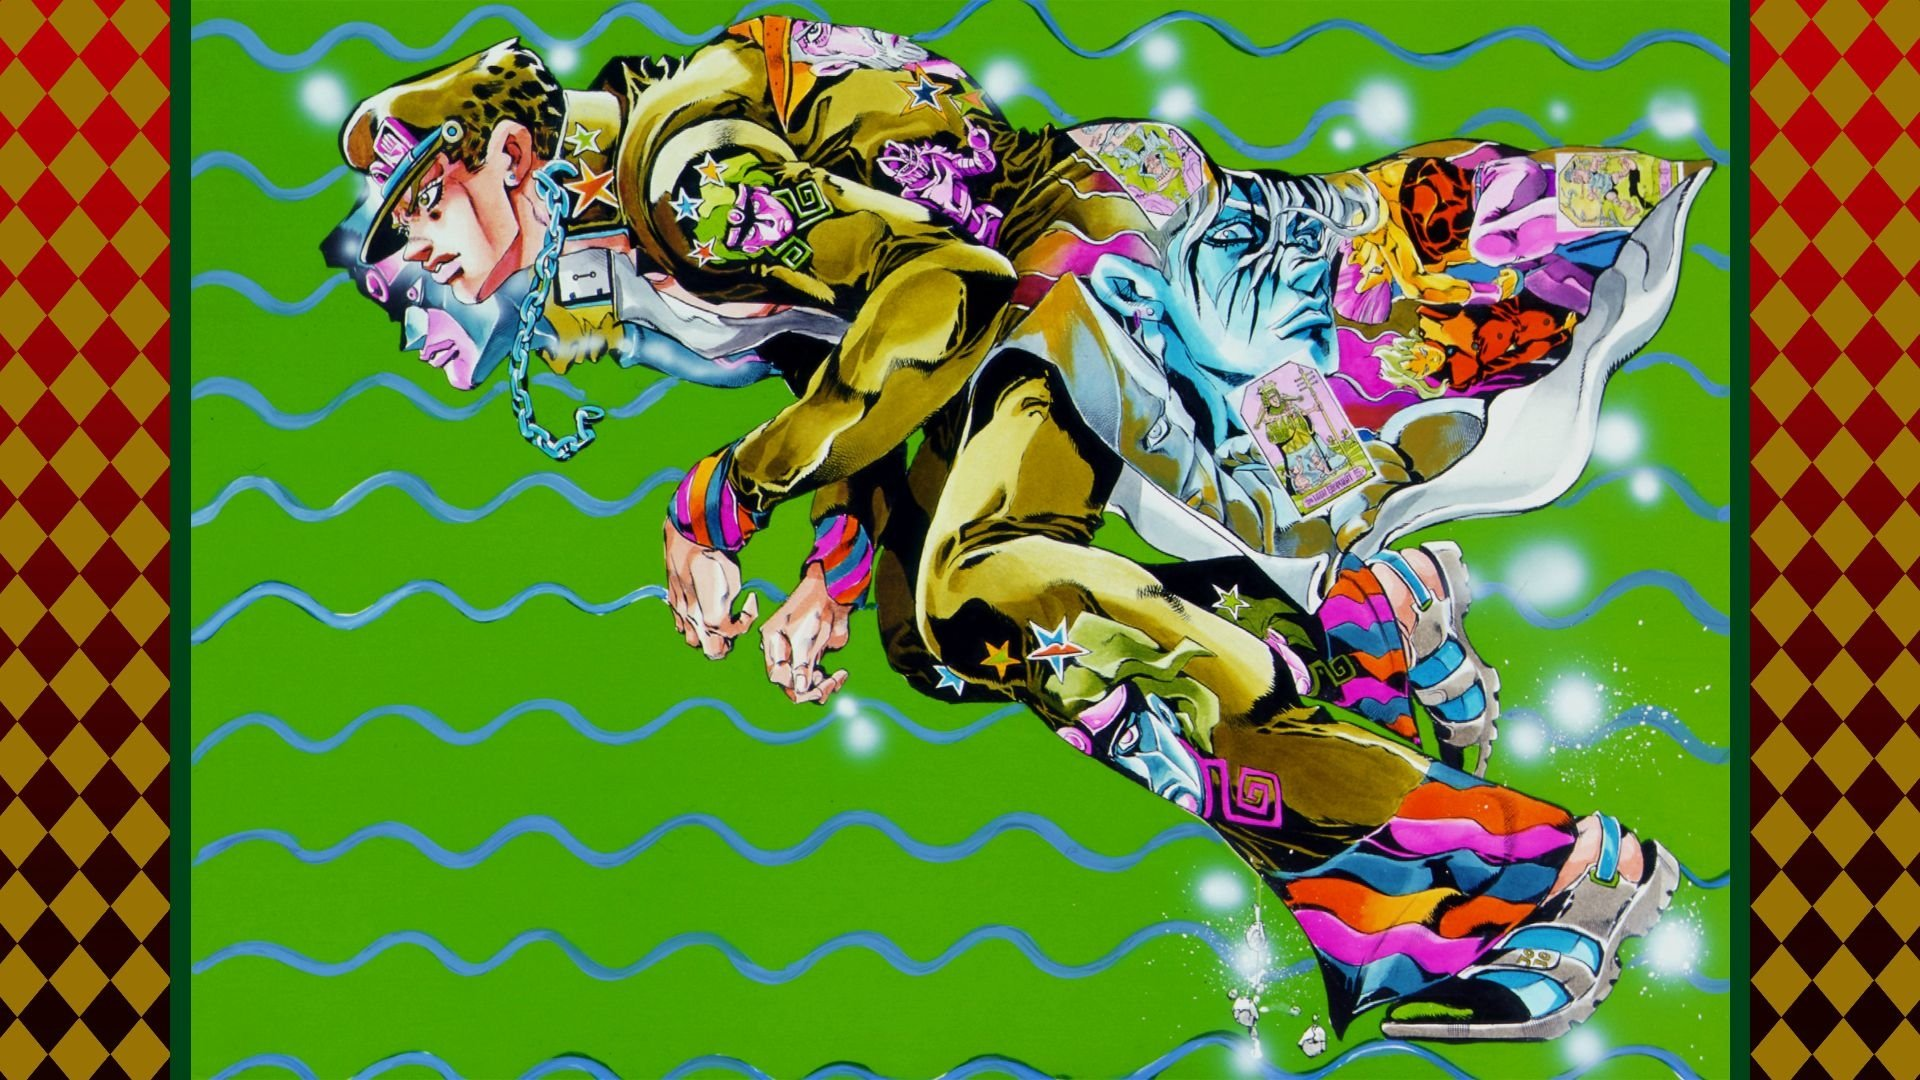 Jojo Bizarre Adventure Wallpaper